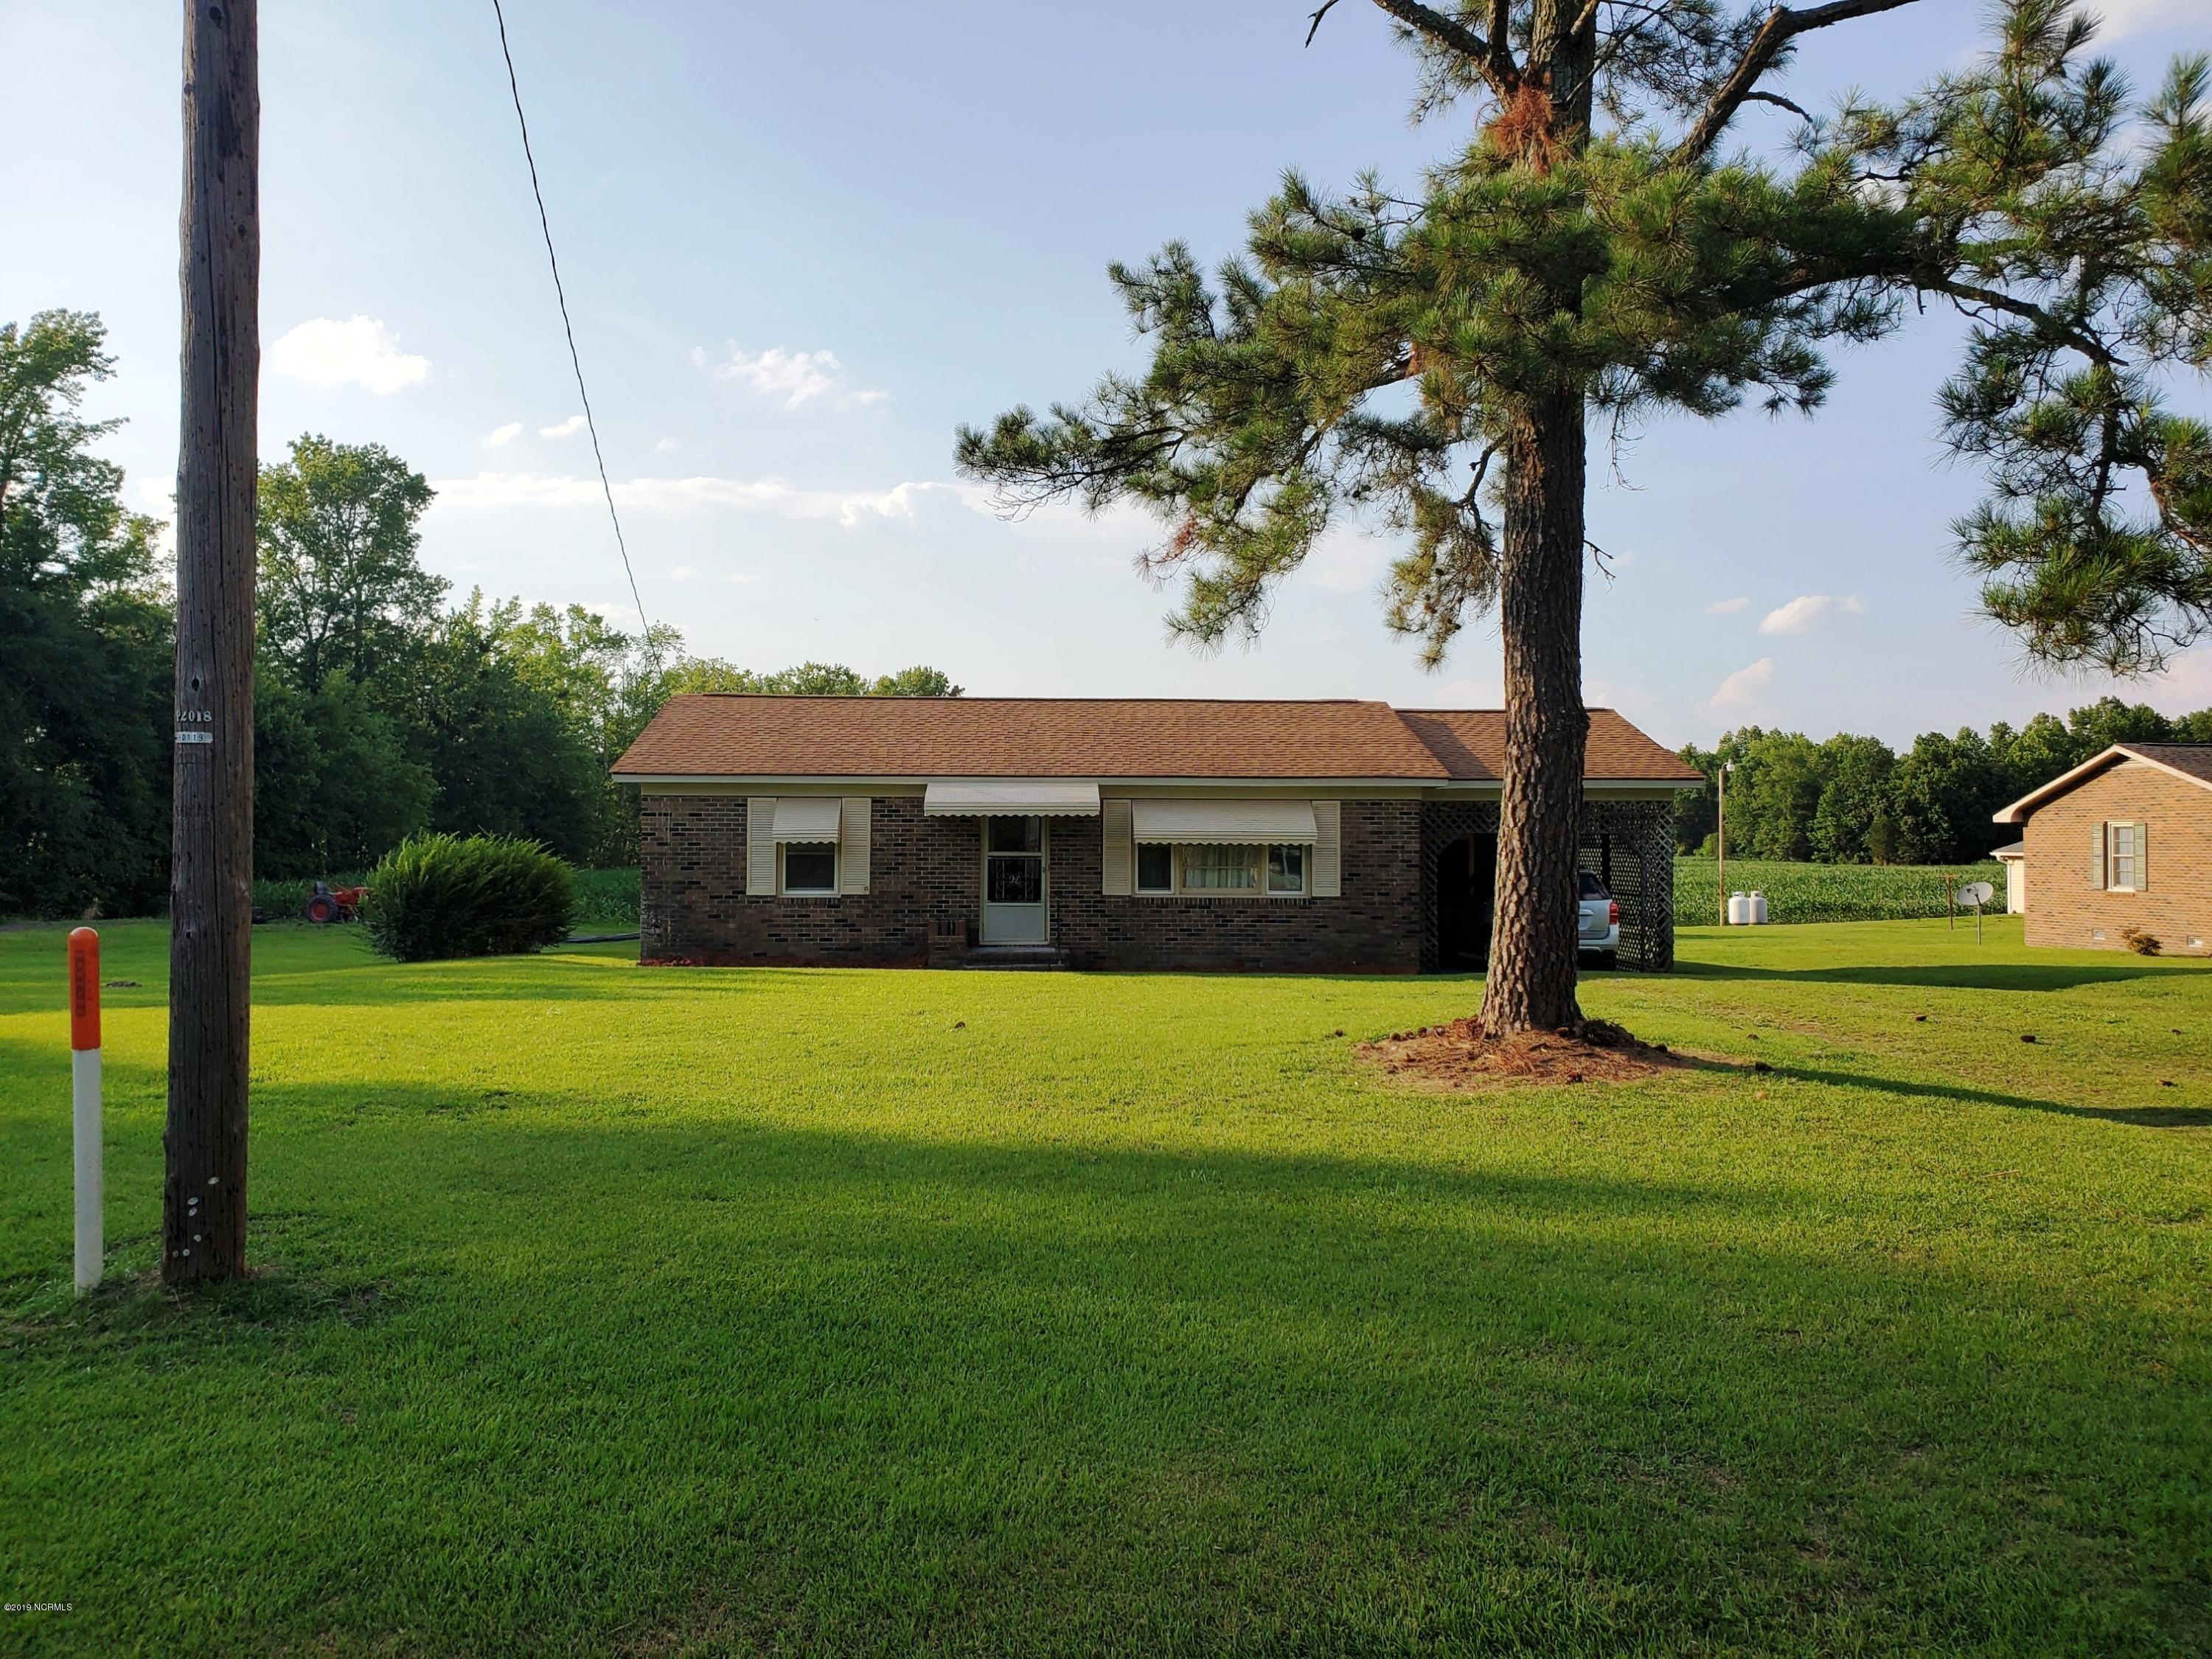 4975 Nc Highway 32, Plymouth, North Carolina, 3 Bedrooms Bedrooms, 5 Rooms Rooms,1 BathroomBathrooms,Single family residence,For sale,Nc Highway 32,100171224